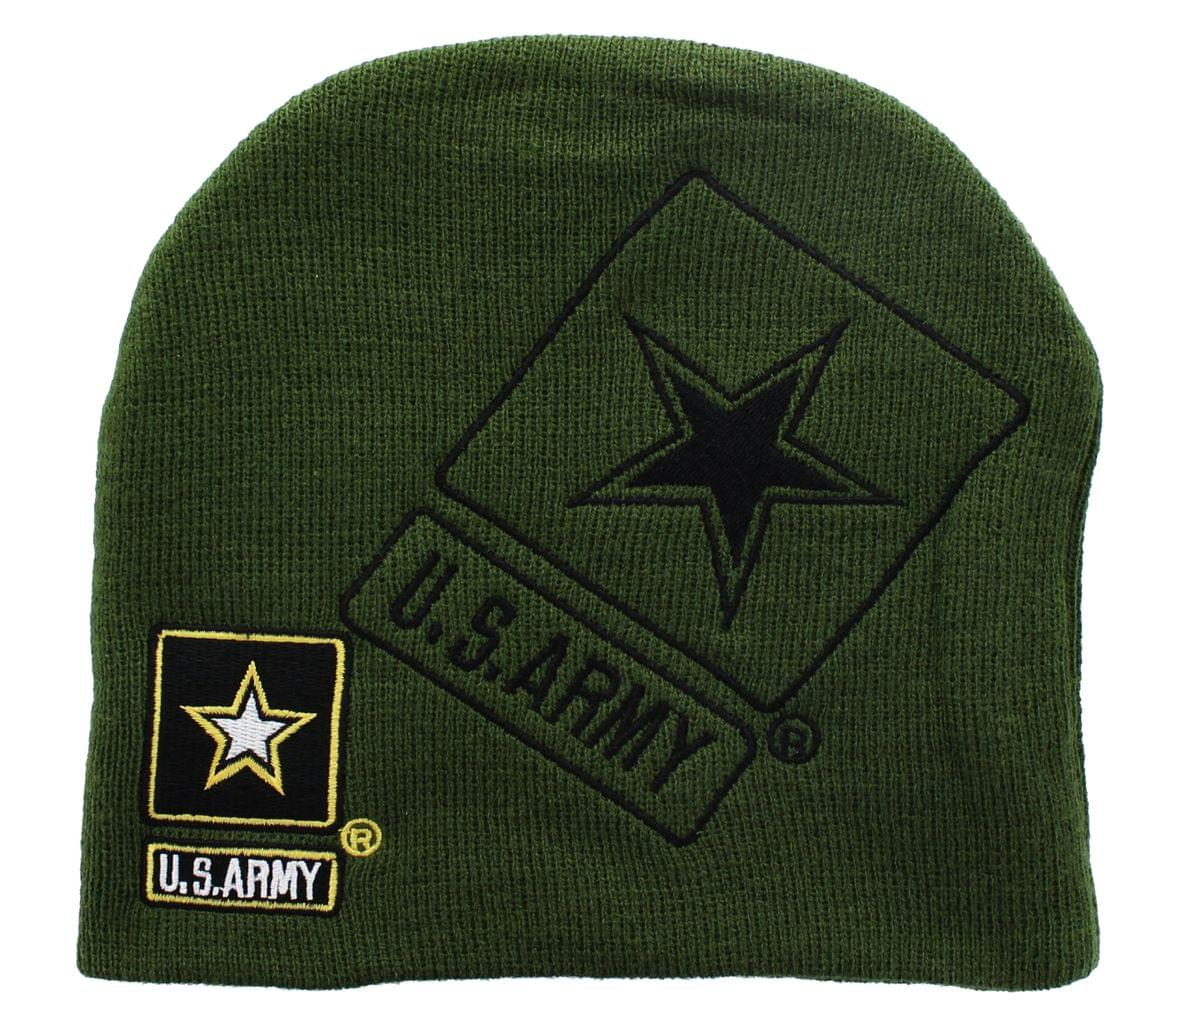 U.S. Army Official Licensee Green Beanie